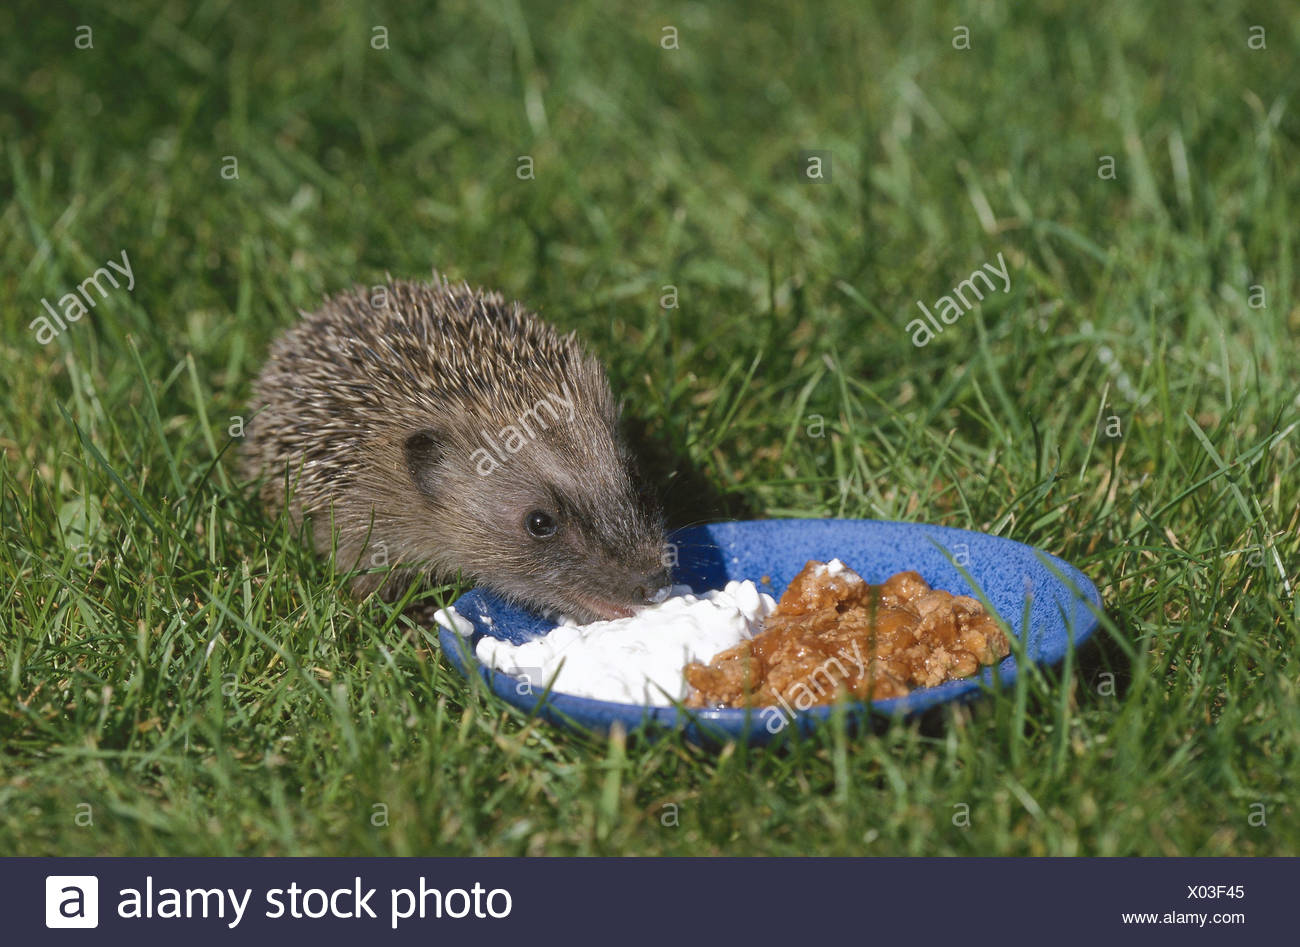 Meadow, plate, lining, European, hedgehog, young animal, Erinaceus europaeus, eat animals, animal, mammals, mammal, Erinaceidae, insectivore, nocturnal, cat's lining, cottage cheese, cheese, lining space - Stock Image